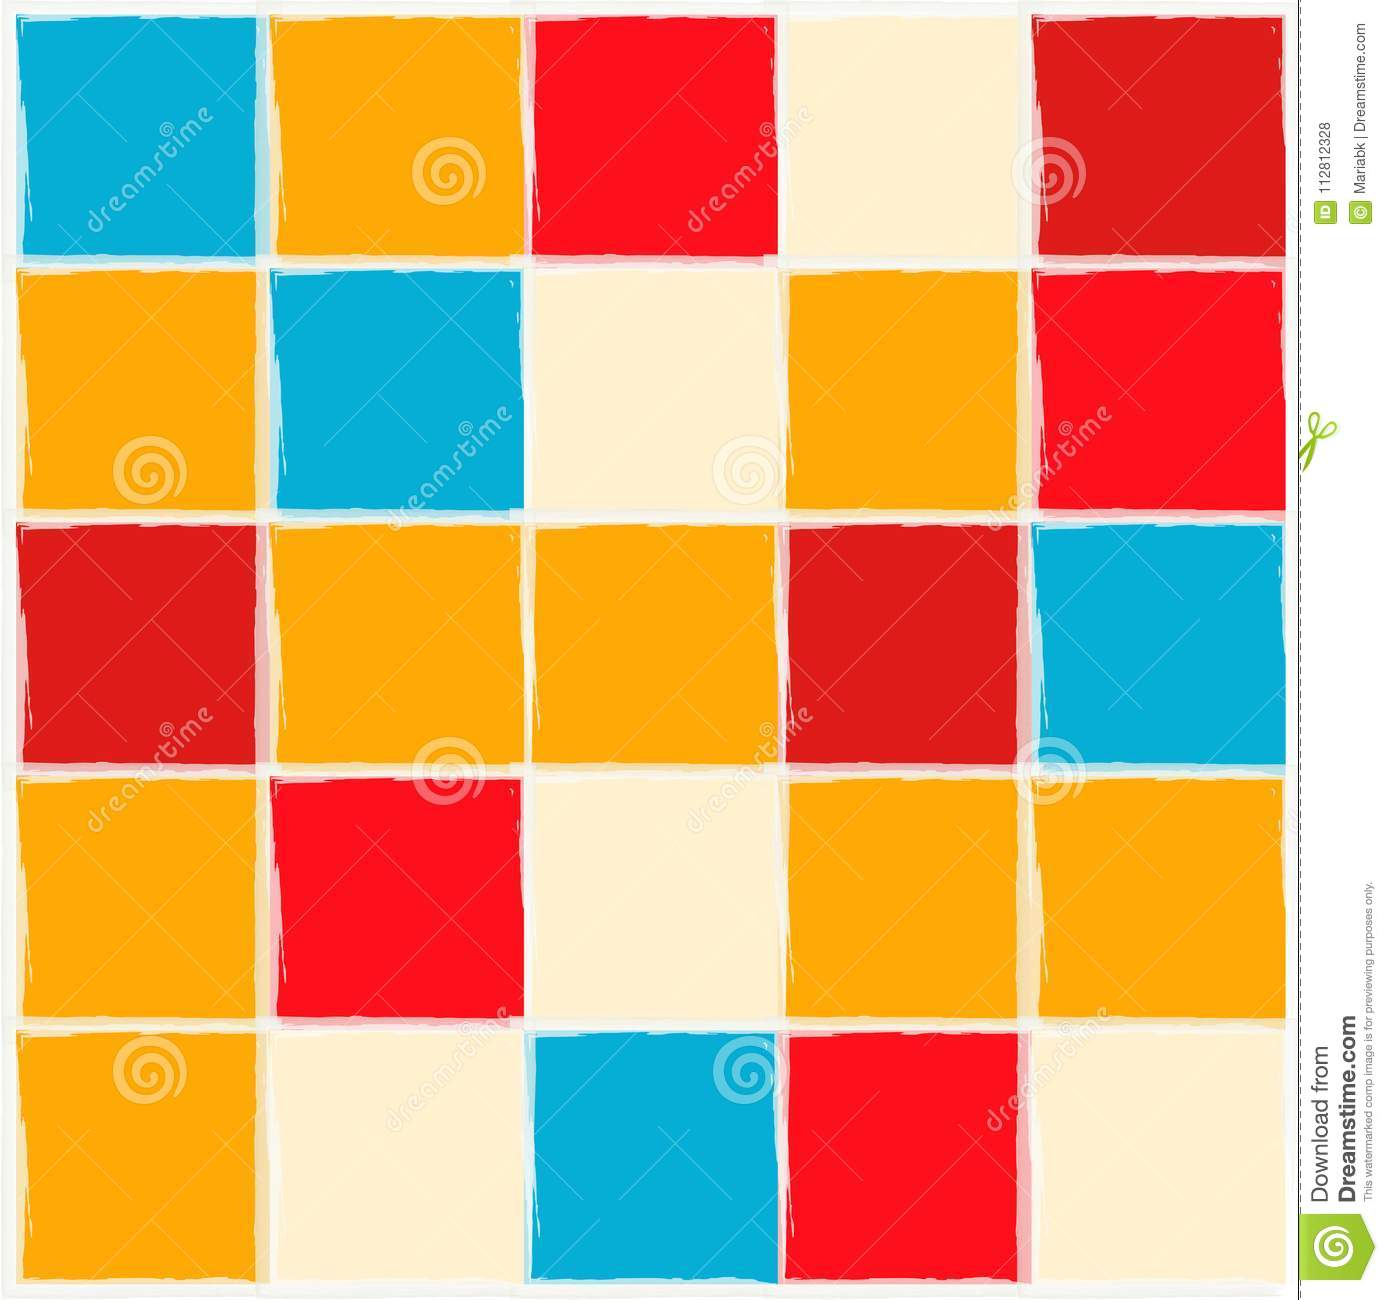 Bright Background. Kitchen Brick Wall. Red, White, Orange And Blue ...